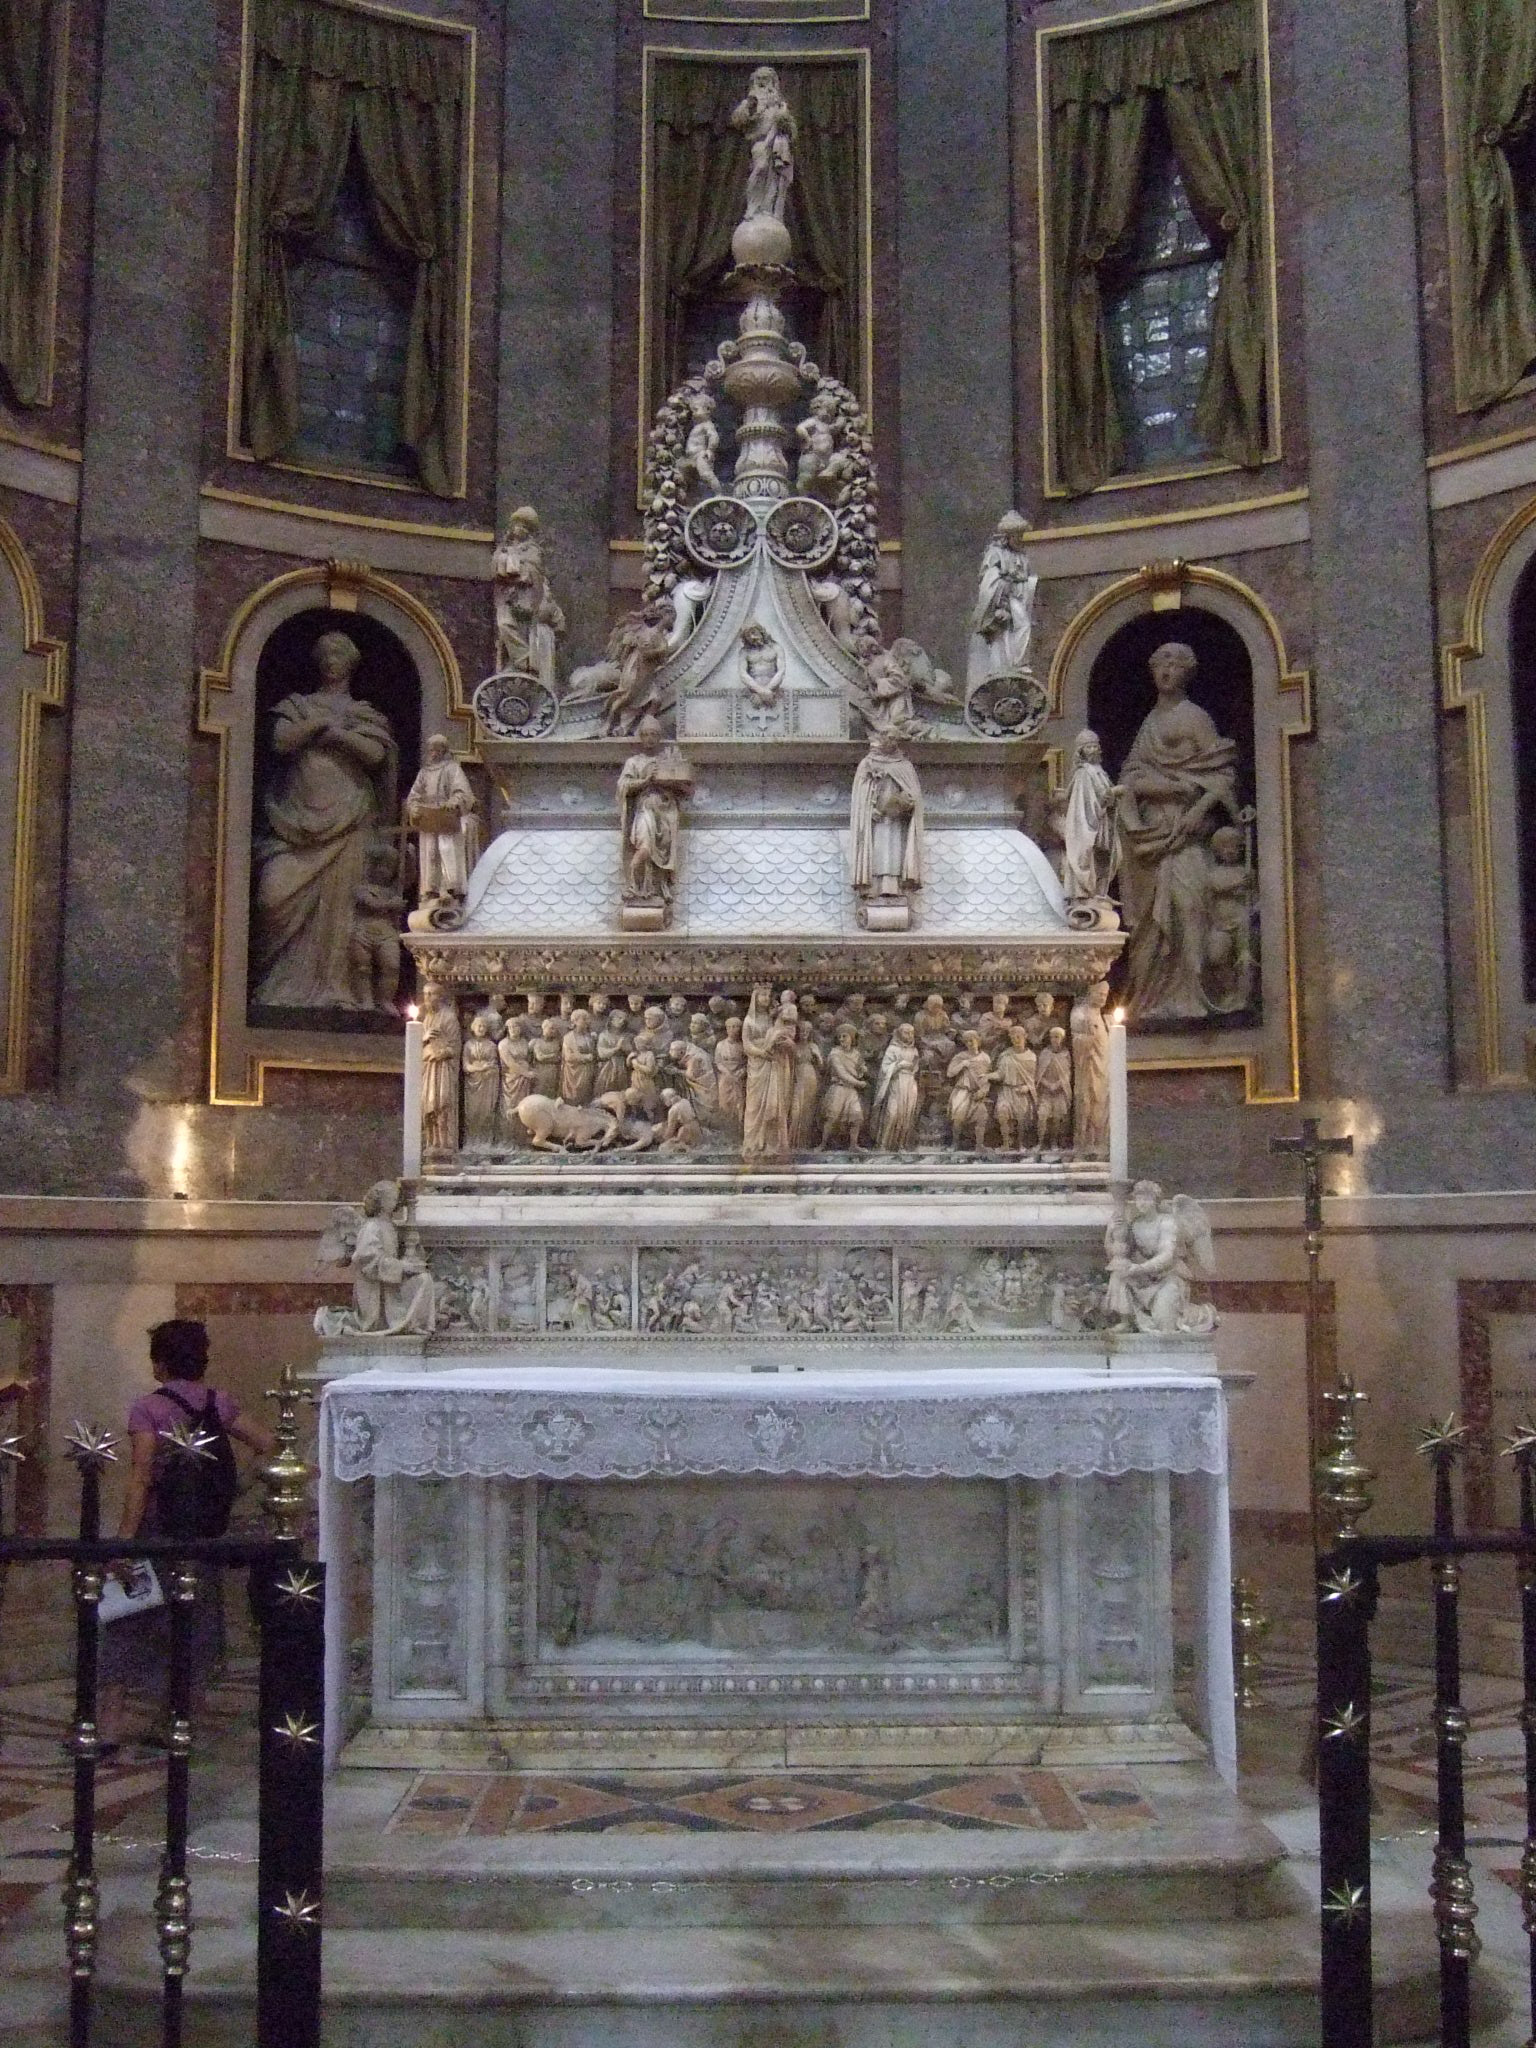 http://upload.wikimedia.org/wikipedia/commons/6/65/Shrine_of_Saint_Dominic,.JPG